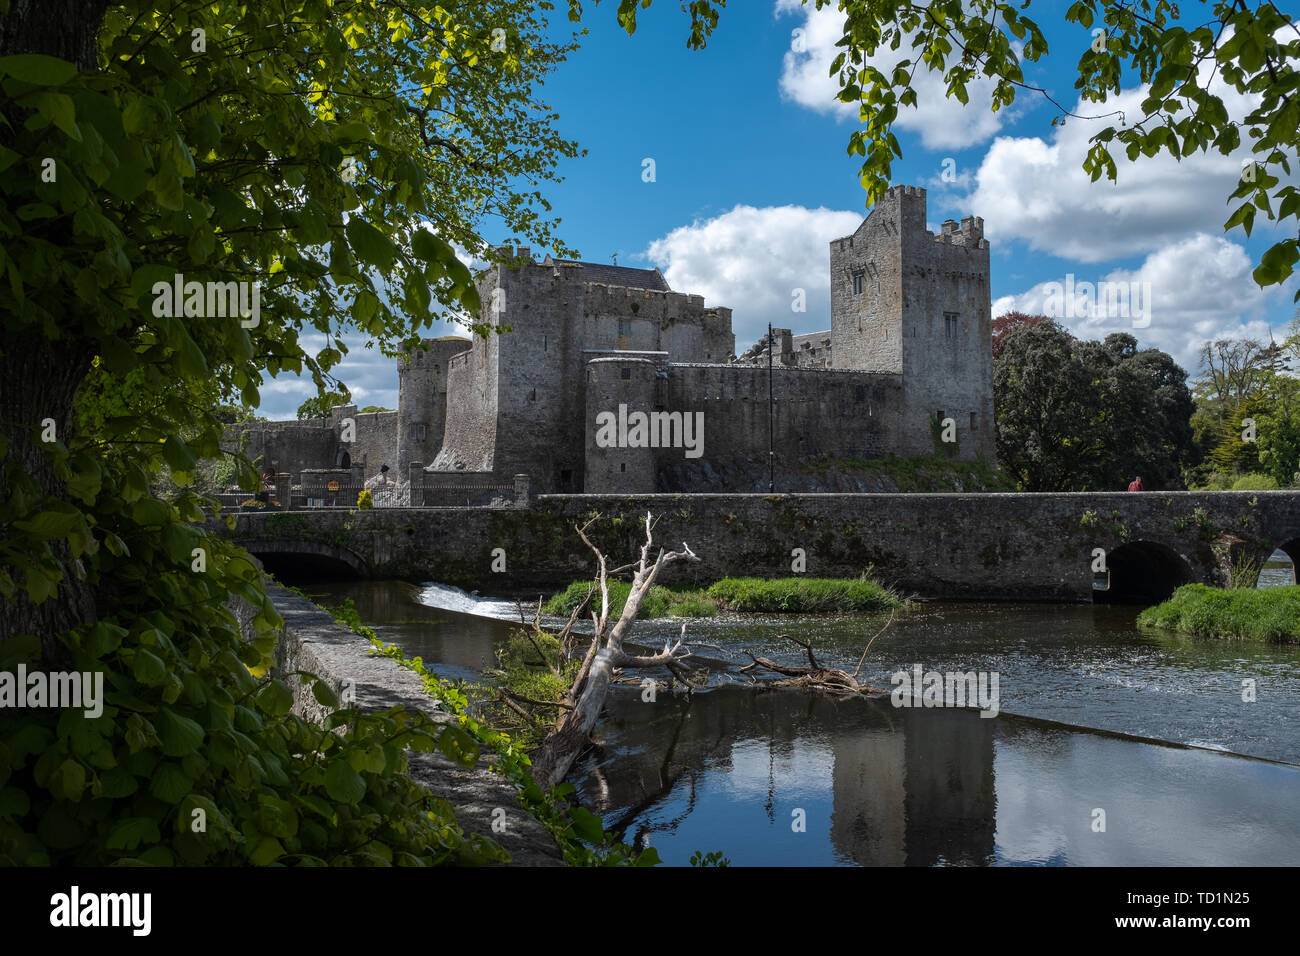 A view of the Castle of Cahir across the weir down the River Suir, bright blue sky and fluffy white clouds, nobody in the image - Stock Image